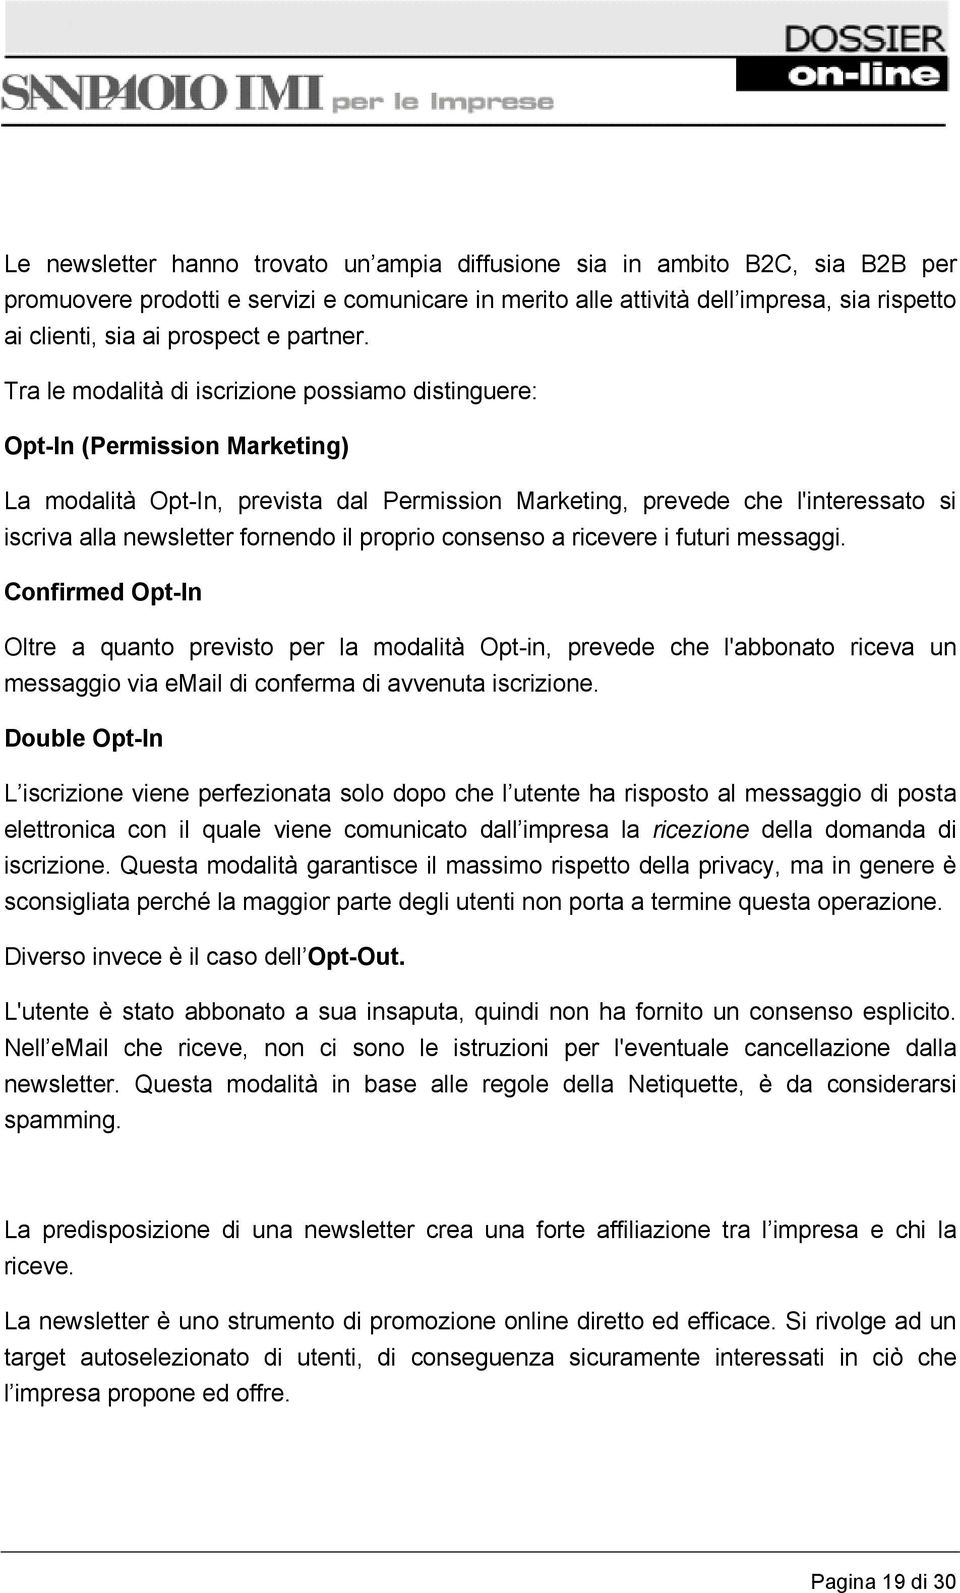 Tra le modalità di iscrizione possiamo distinguere: Opt-In (Permission Marketing) La modalità Opt-In, prevista dal Permission Marketing, prevede che l'interessato si iscriva alla newsletter fornendo